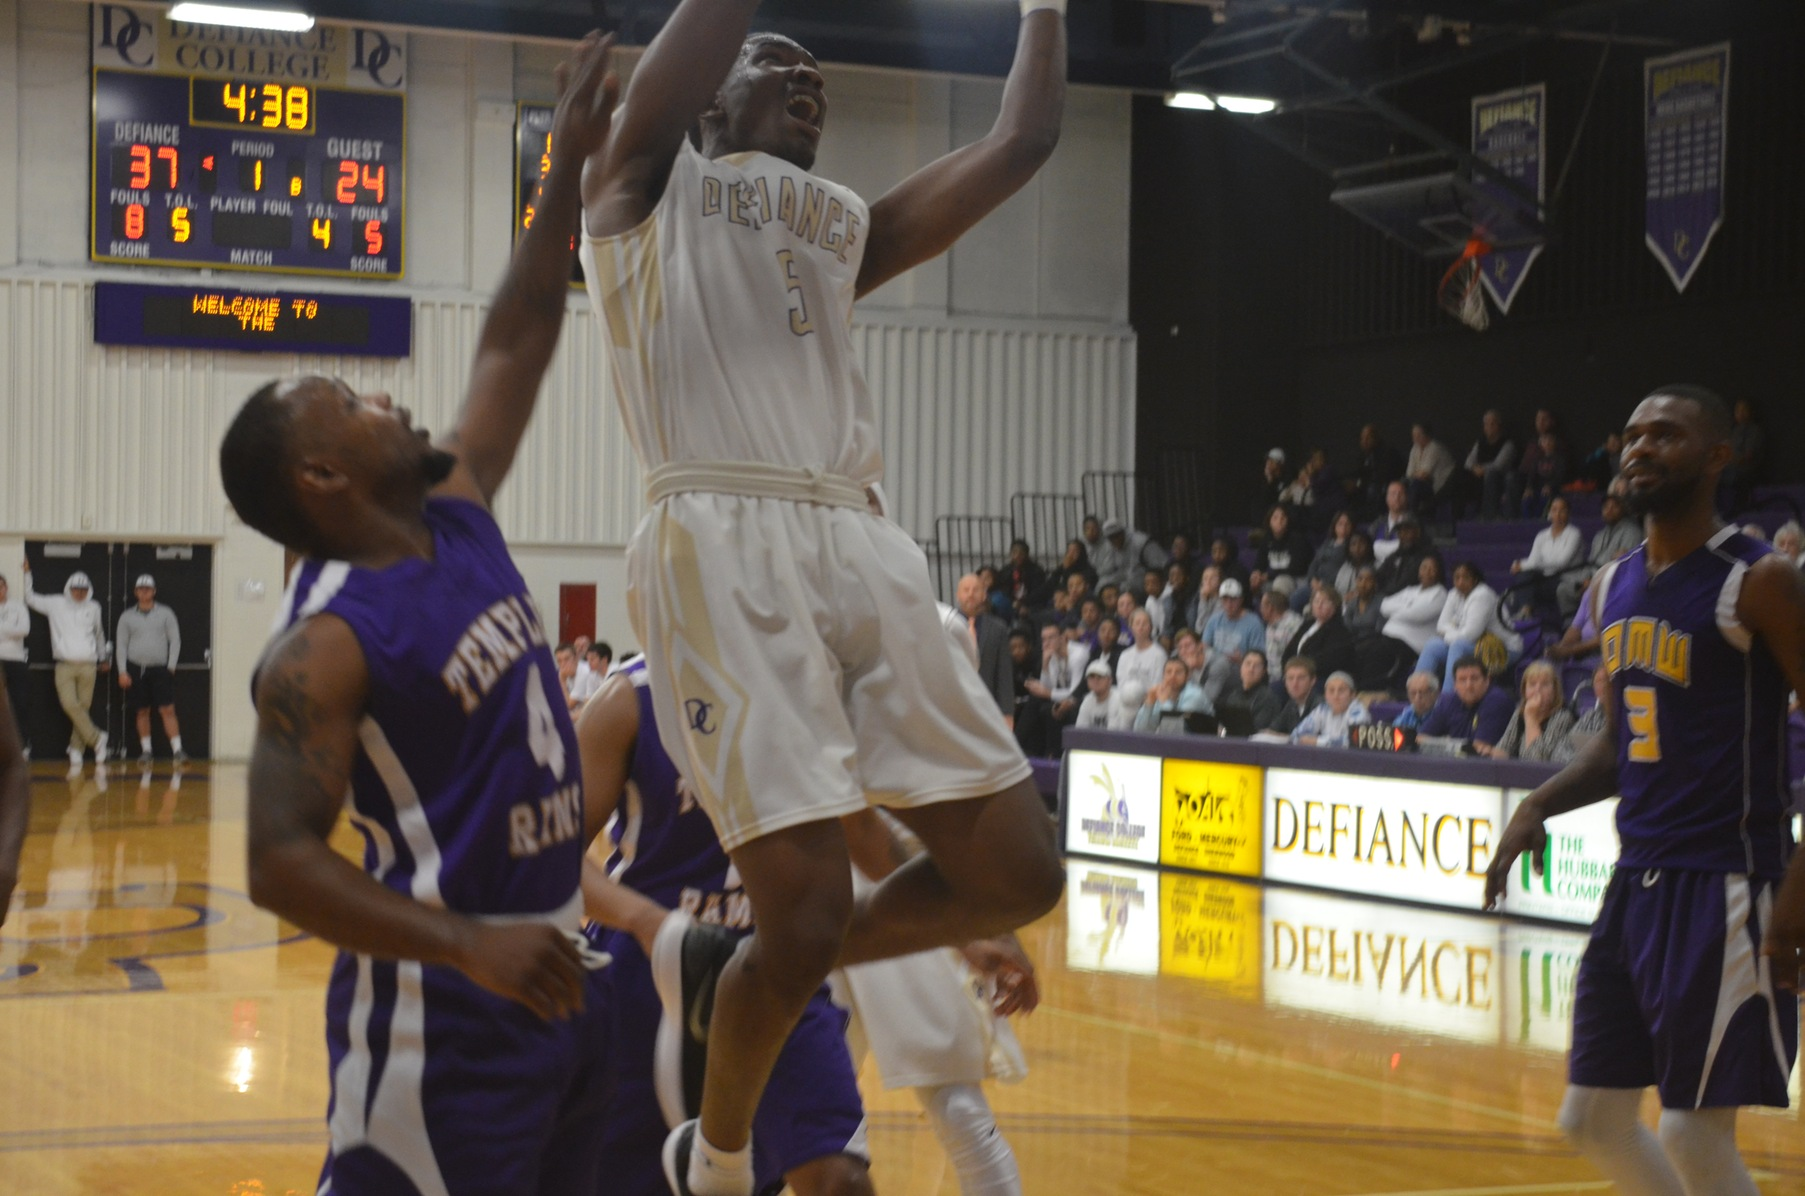 Late Comeback Falls Short as DC Falls 77-65 to Rose-Hulman